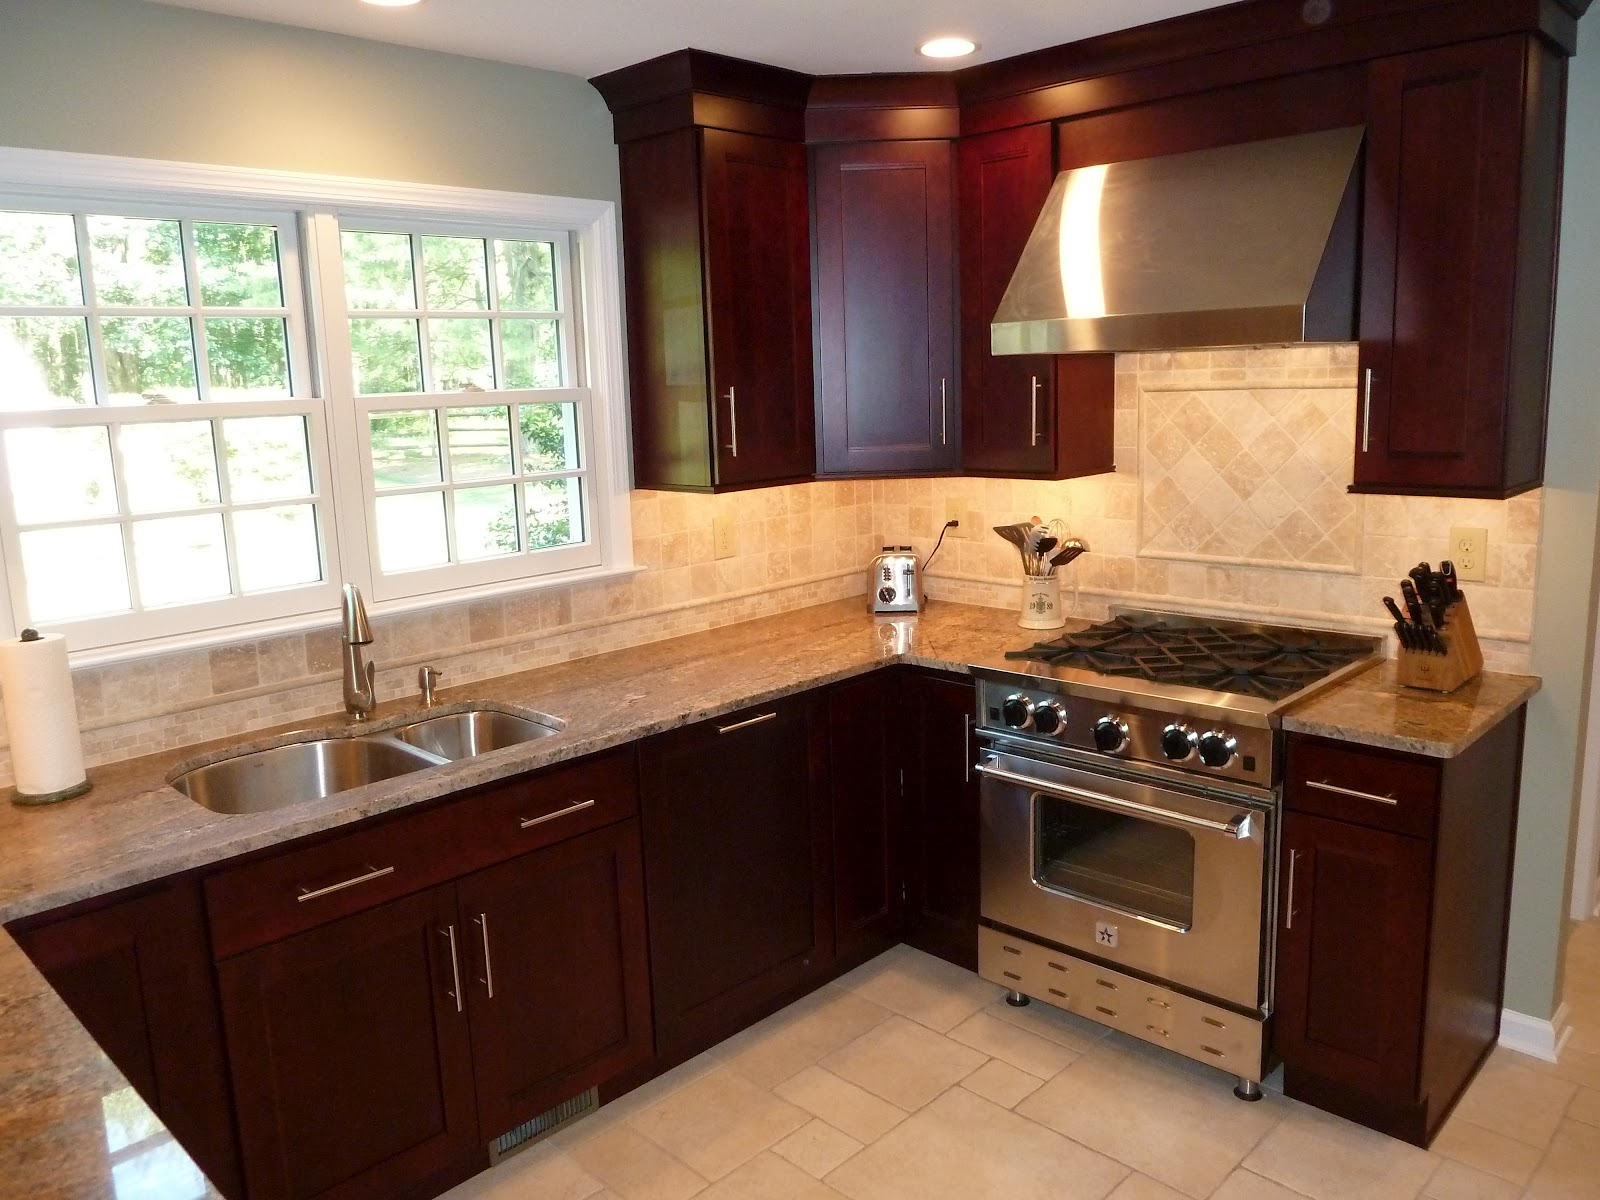 A E Construction S Blog Princeton Kitchen Remodel From Start To Finish